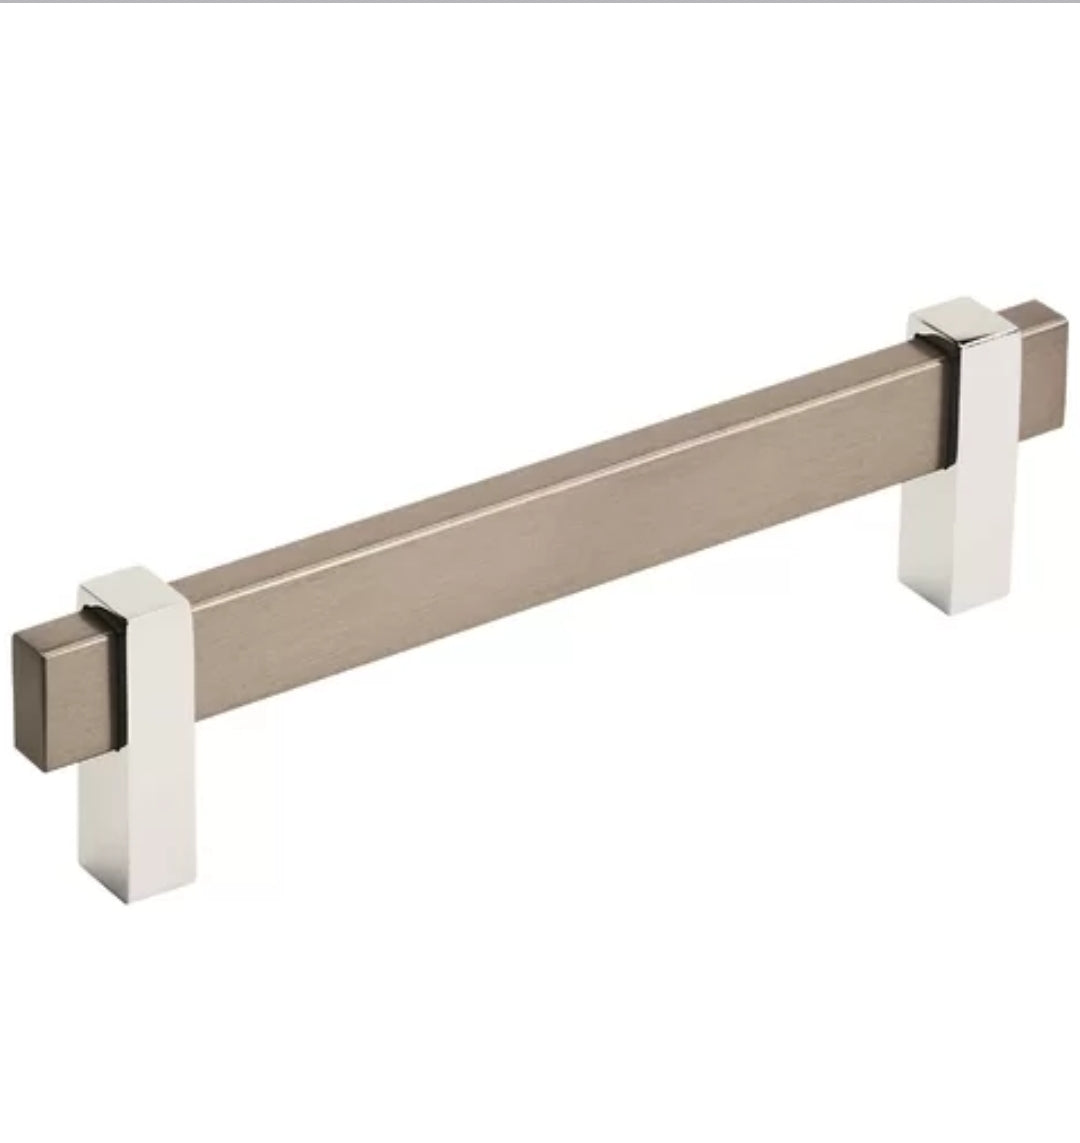 "Mulino 5 1/16"" Center to Center Bar Pull"